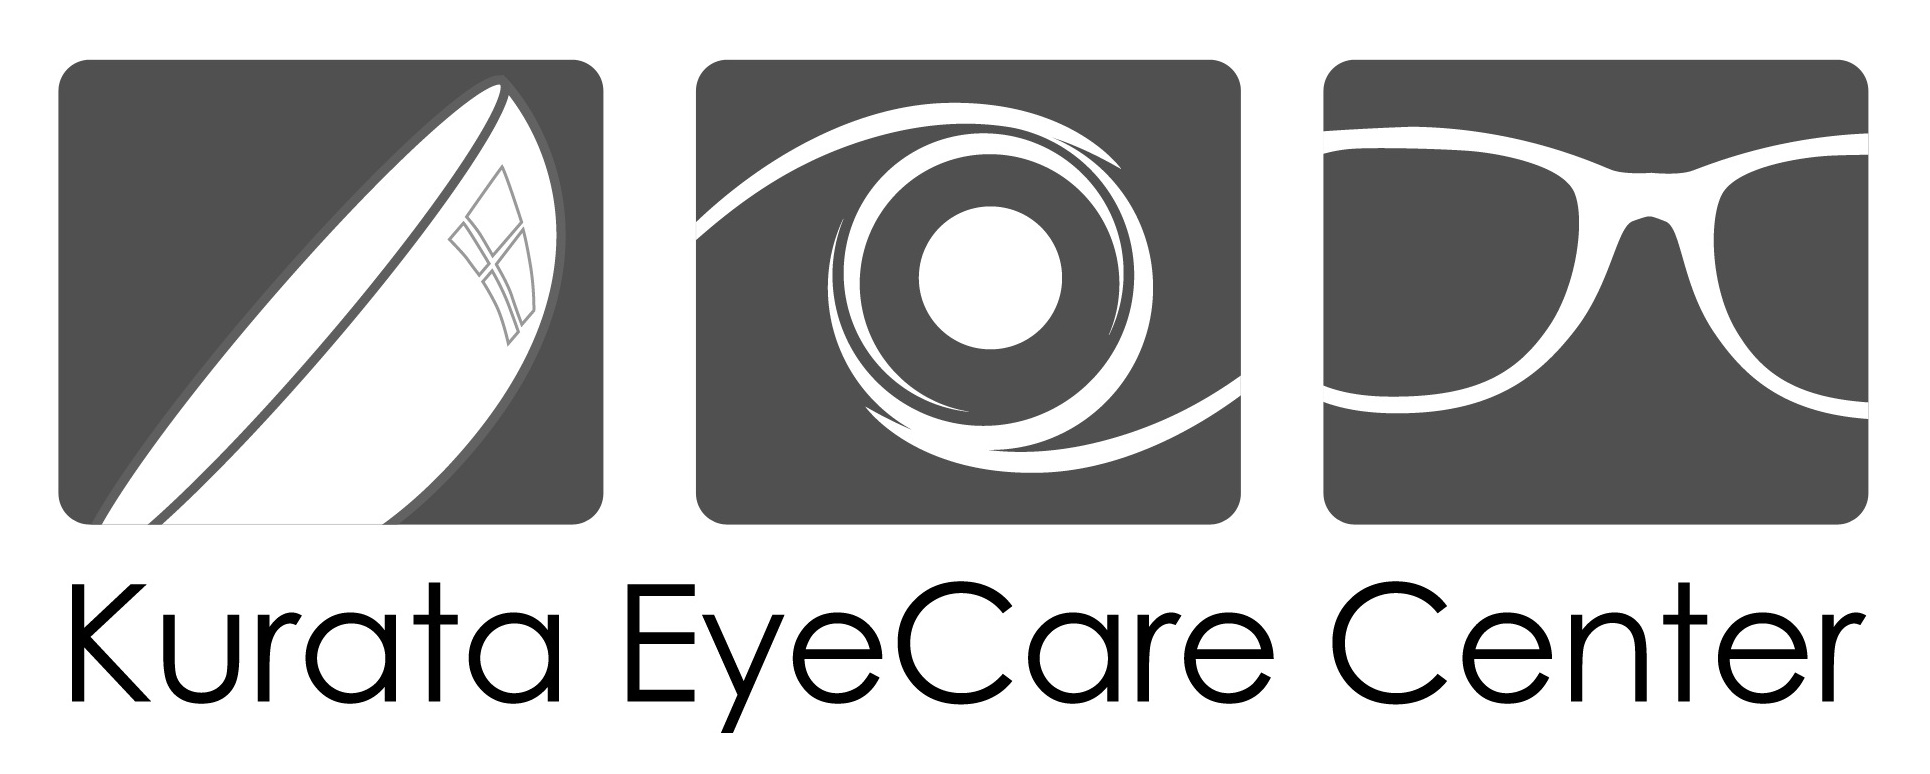 Kurata Eyecare Center Logo